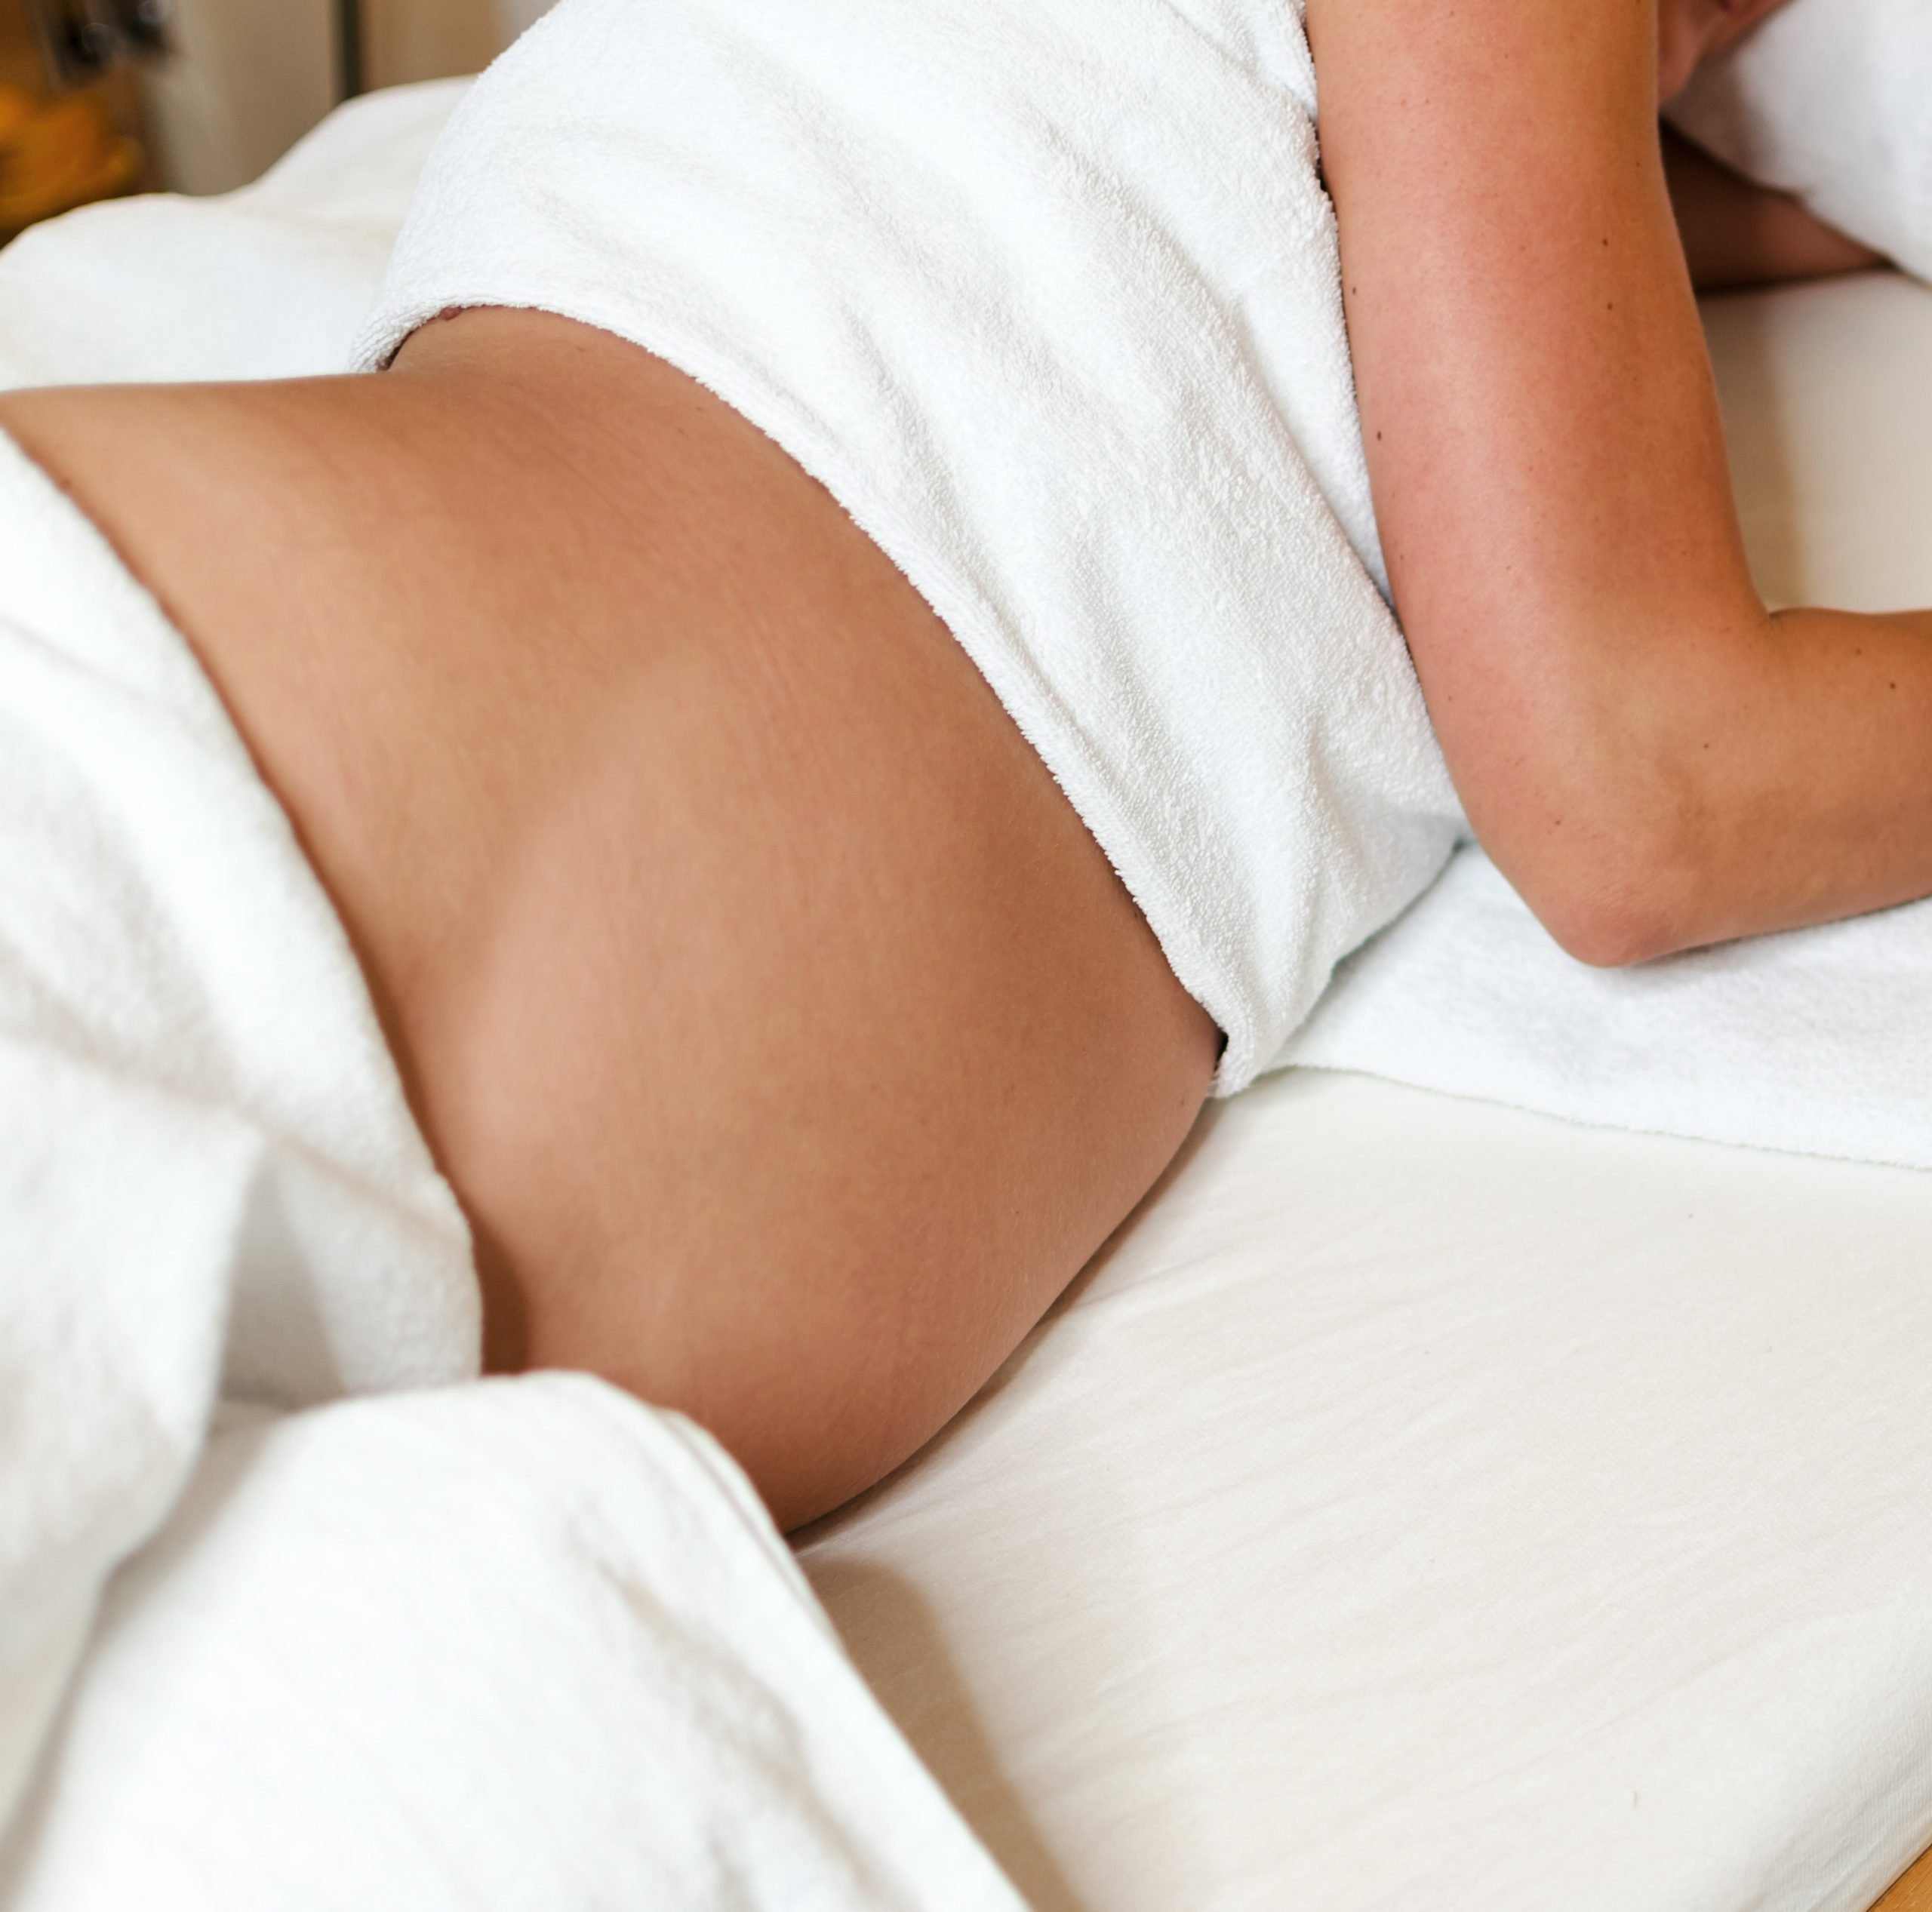 Pregnant Lady getting pregnancy massage and prenatal massage. We come to your home with massage table, linens, candles, music and oil.